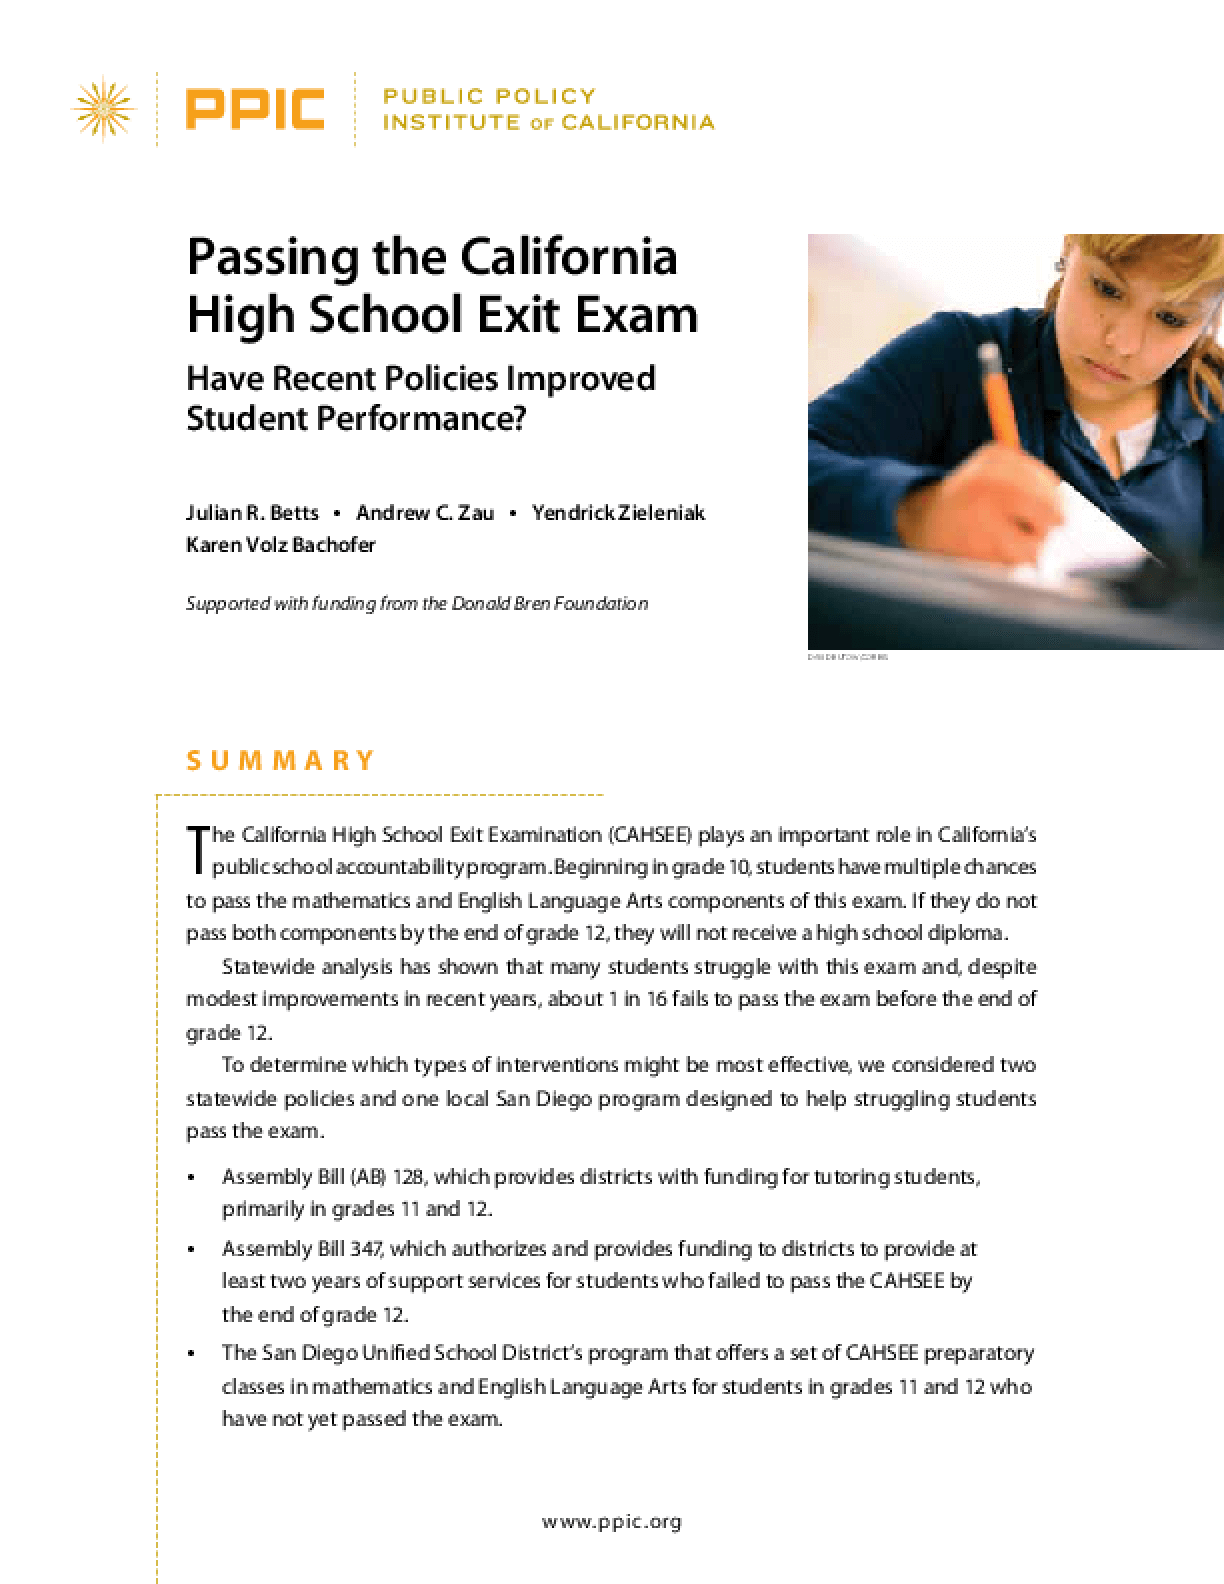 Passing the California High School Exit Exam: Have Recent Policies Improved Student Performance?